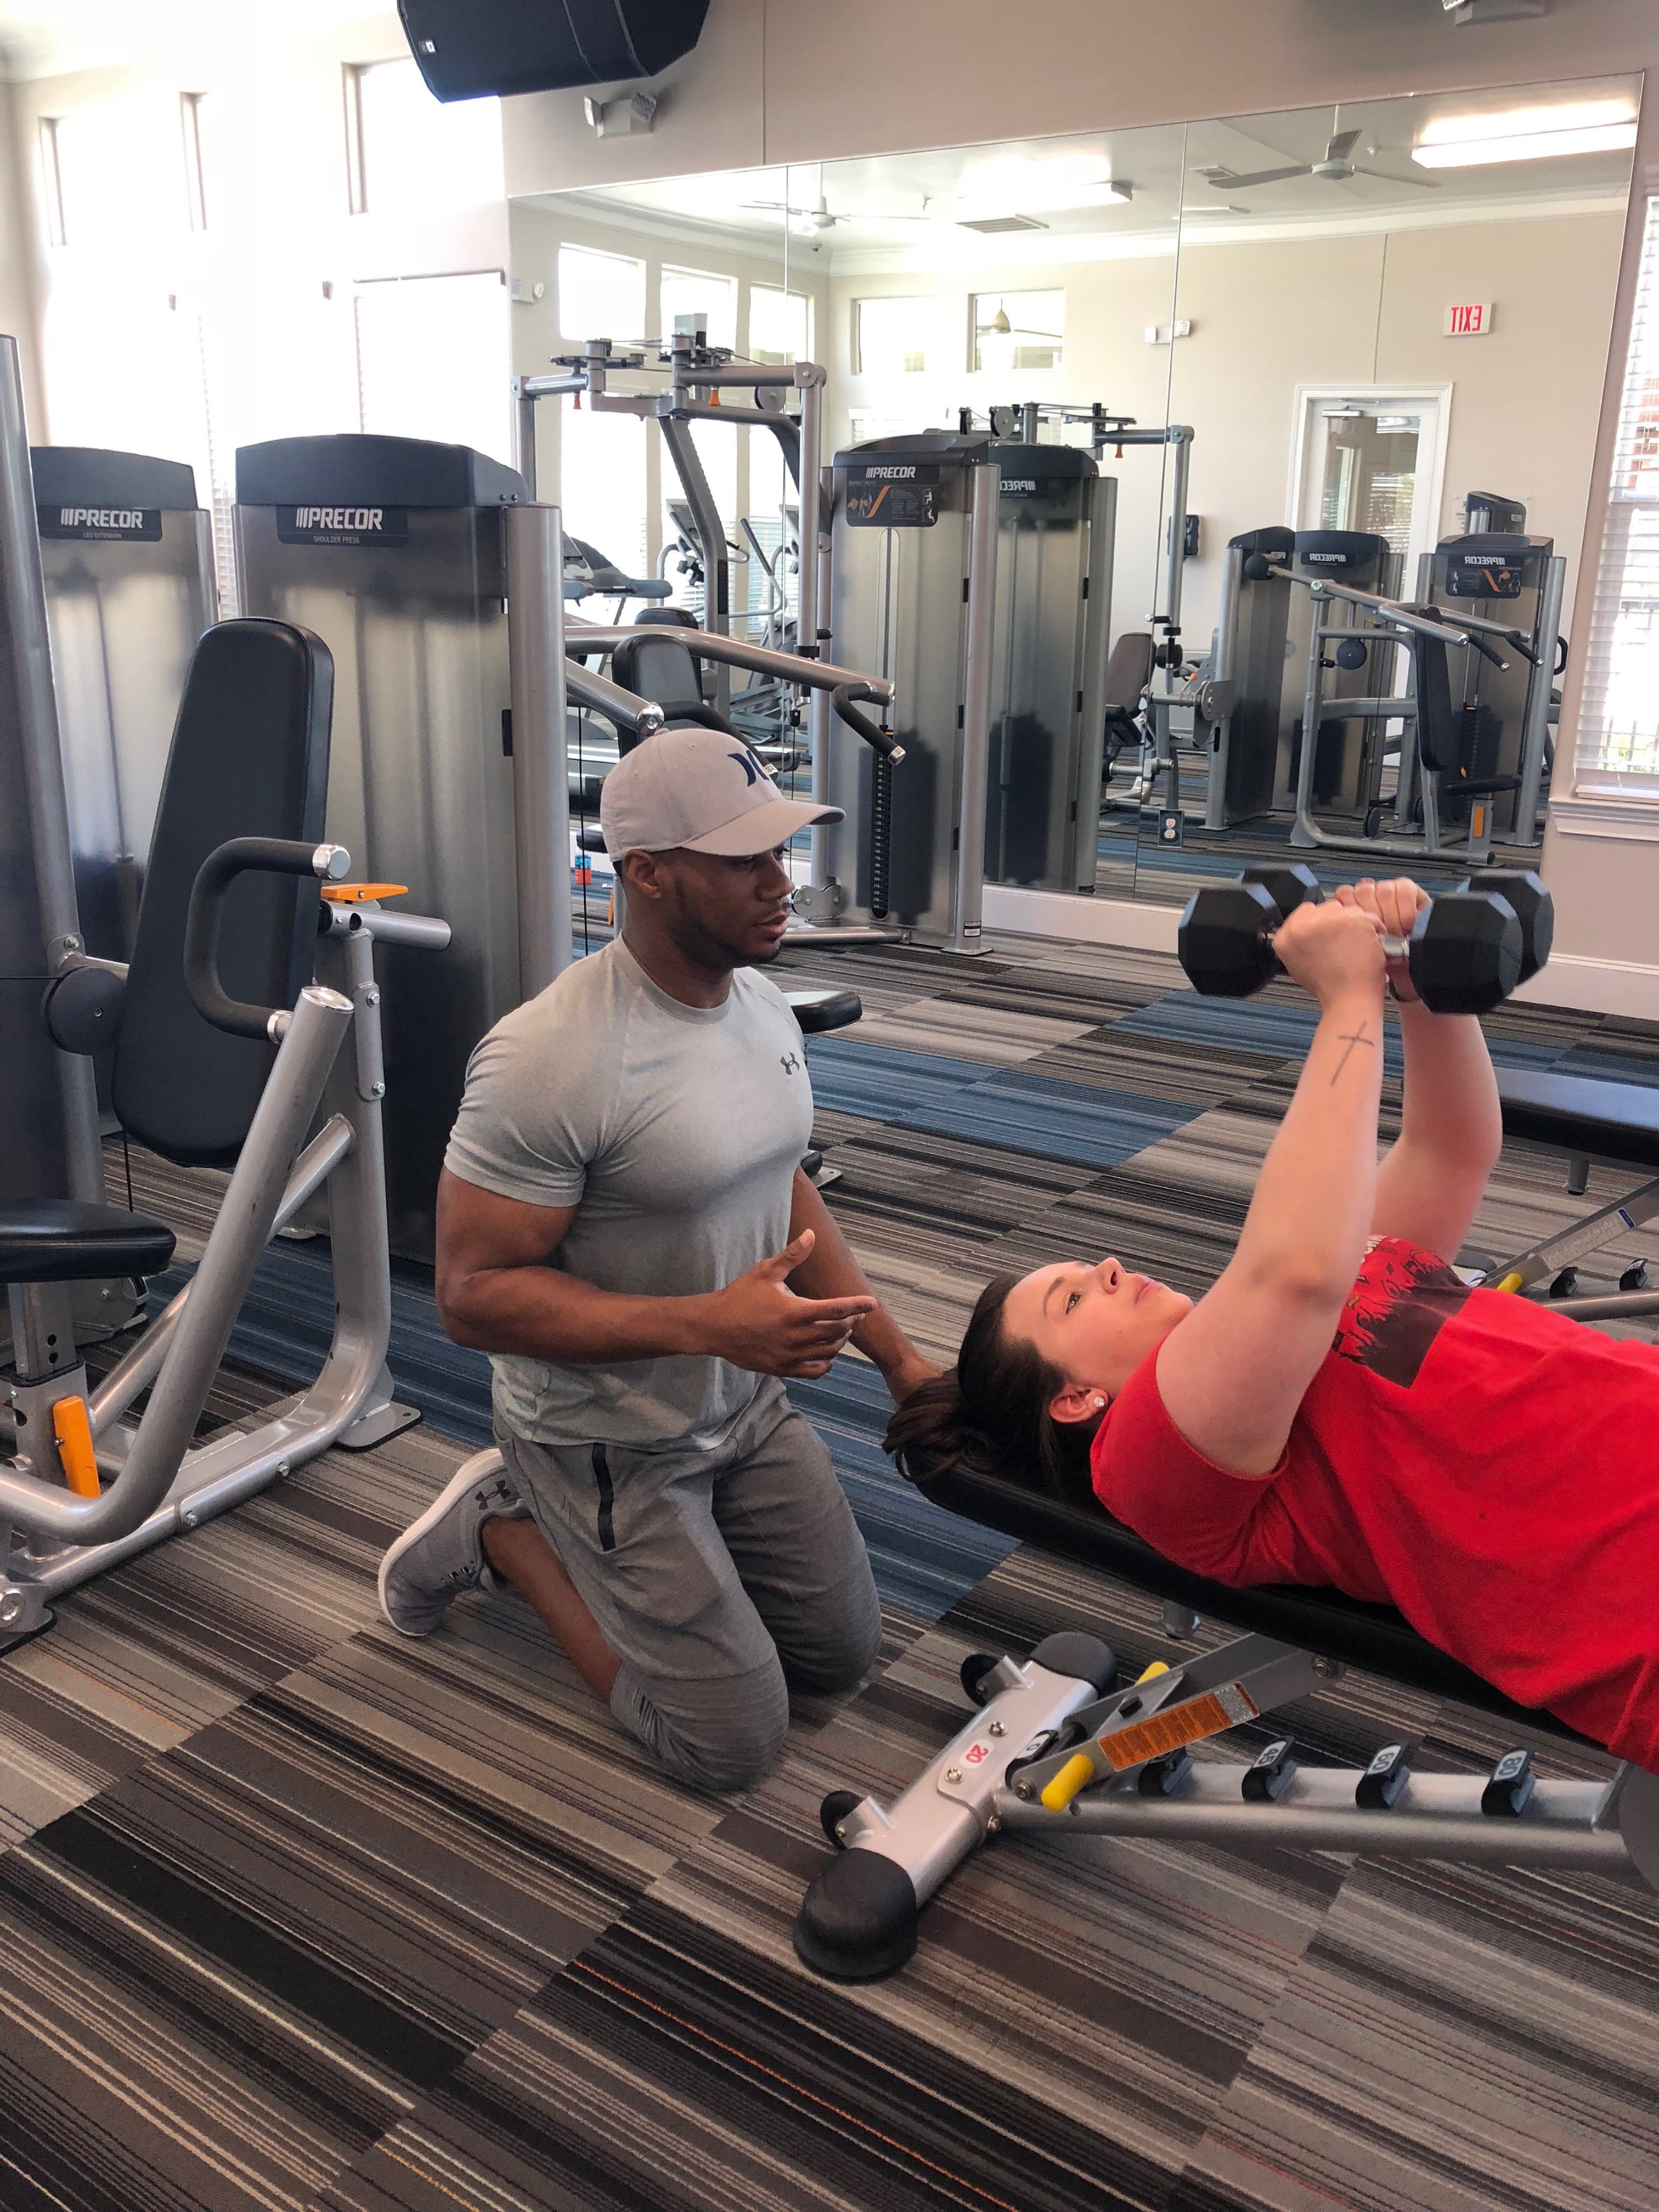 Personal Training Session 1 on 1